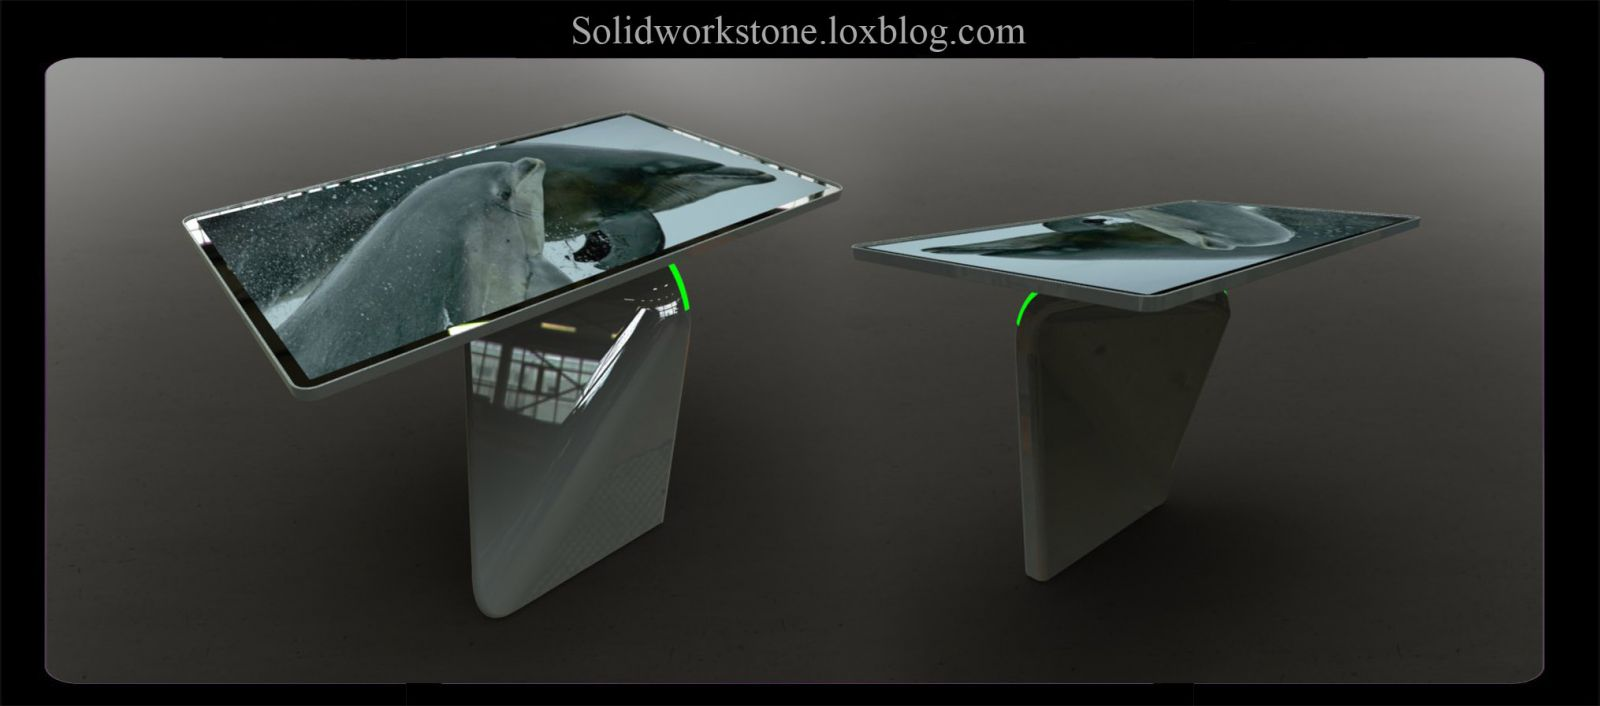 Solidworks for Table design w3schools